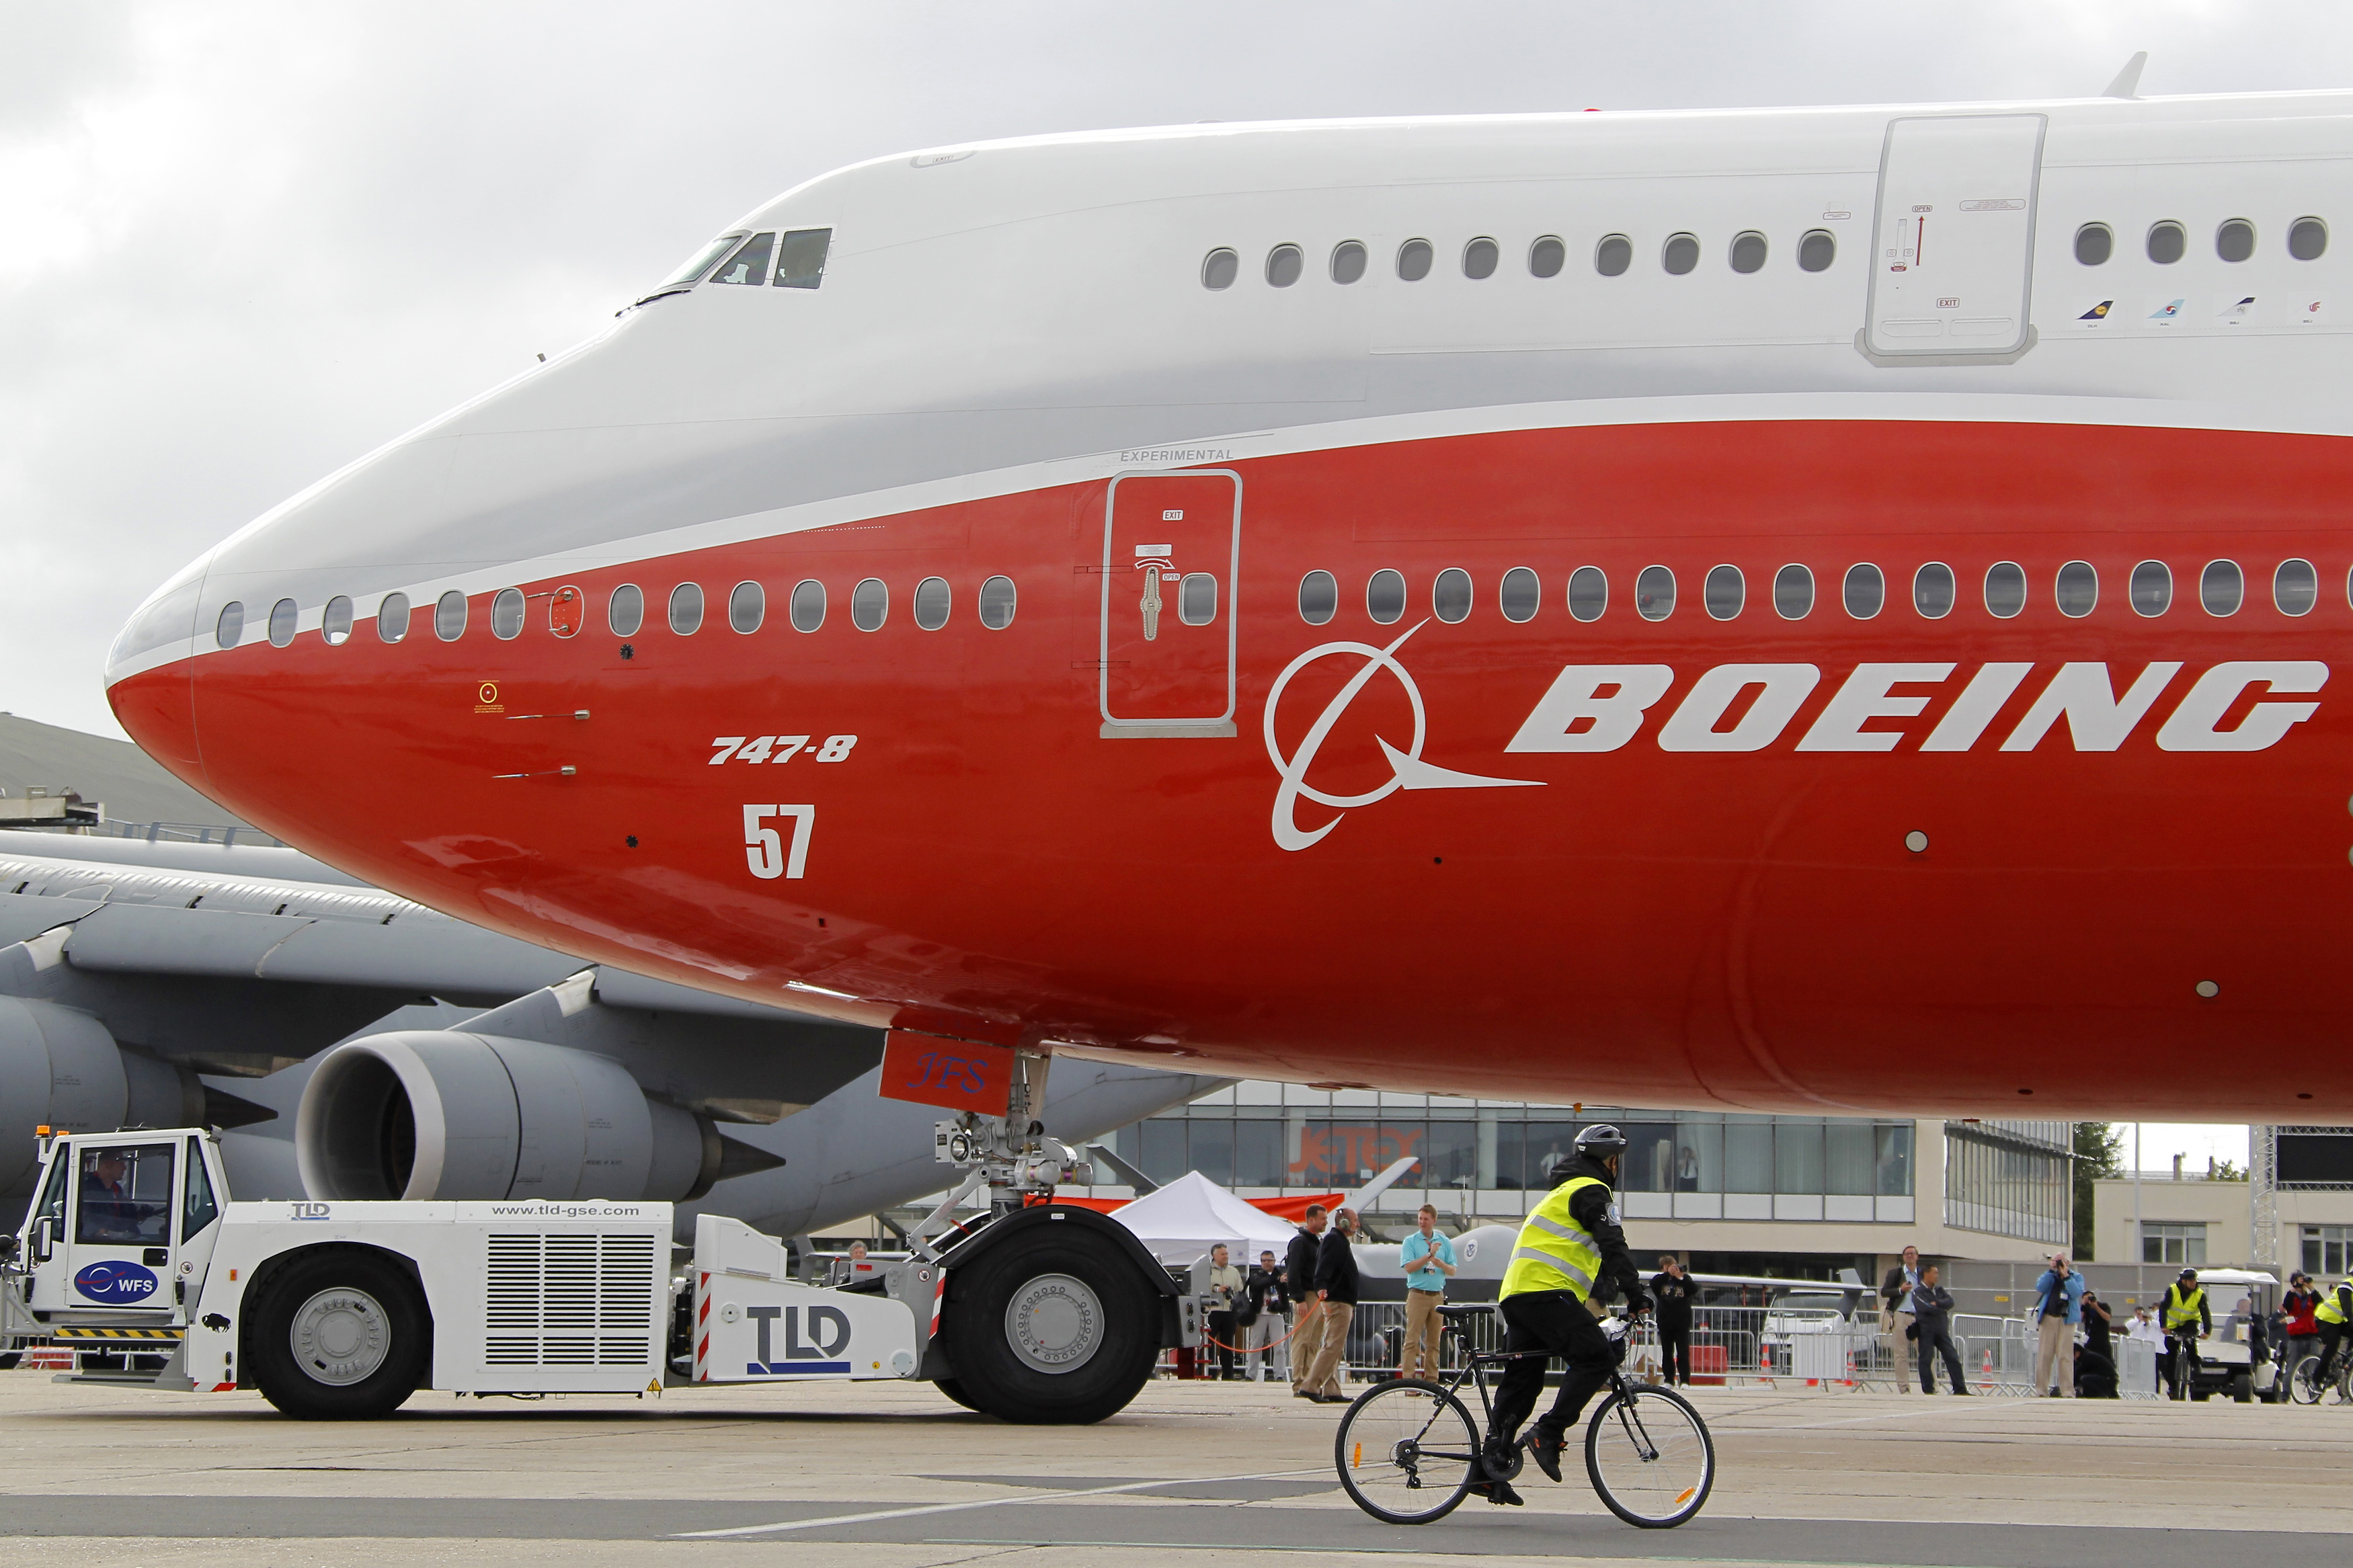 Workers move the new Boeing 747-8 jetliner into a static display on the eve of the Paris Air Show at Le Bourget airport near Paris on June 19, 2011